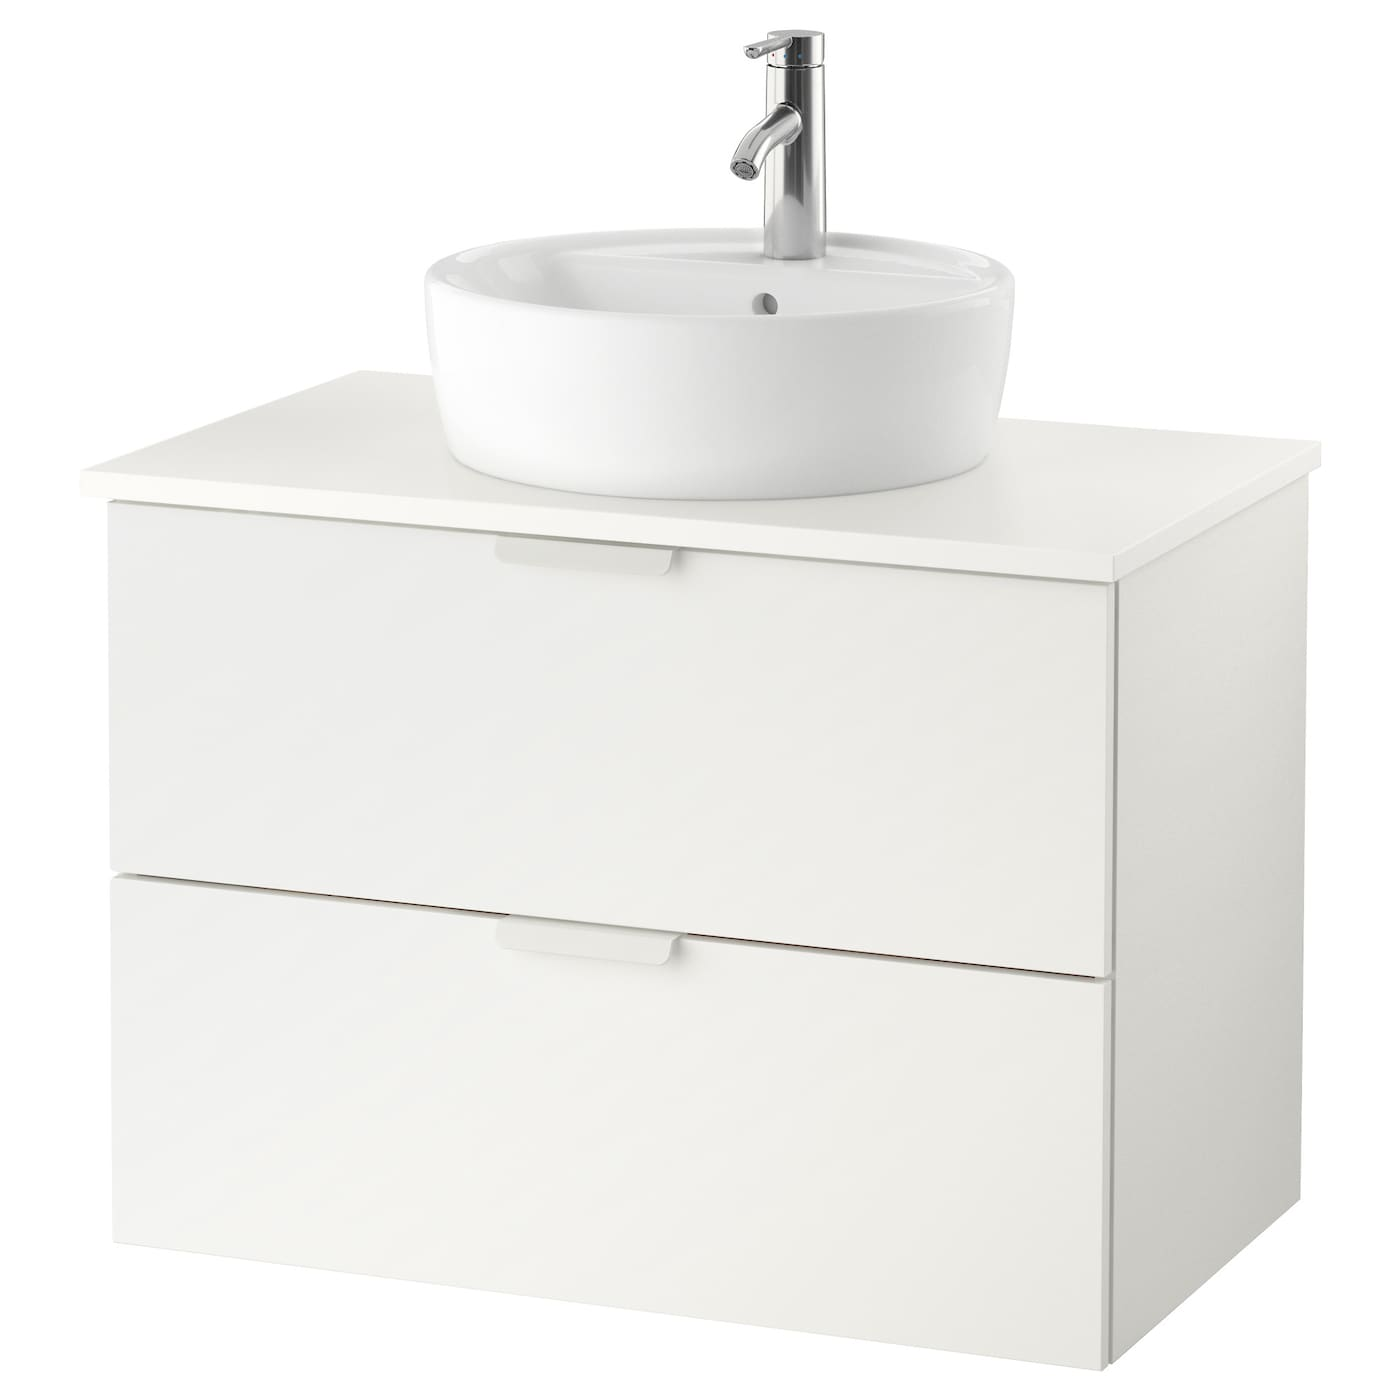 godmorgon tolken t rnviken meuble lavabo av lavabo poser 45 blanc 82x49x74 cm ikea. Black Bedroom Furniture Sets. Home Design Ideas